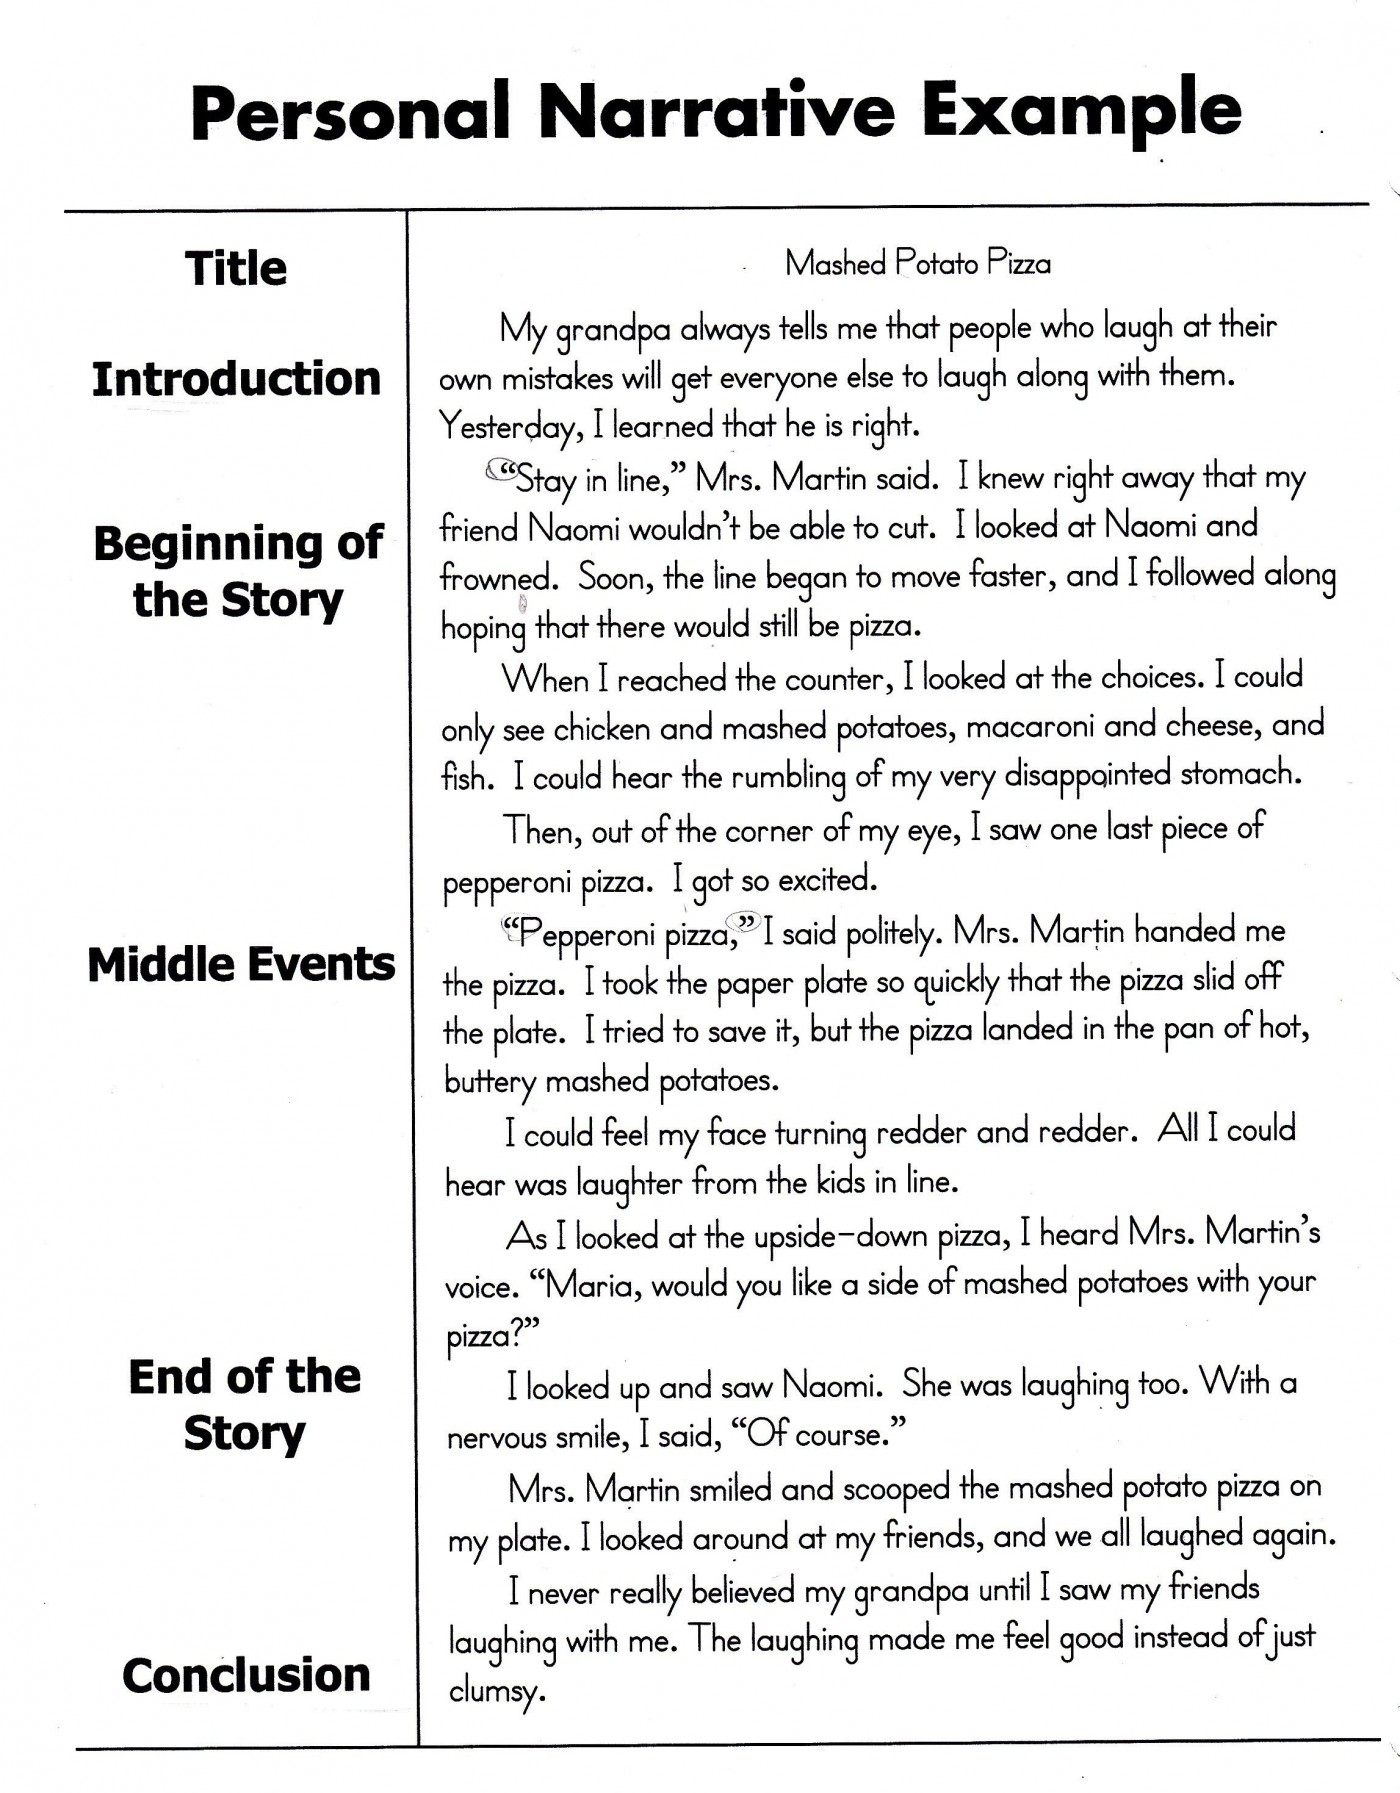 009 Essay Example Personal Narrative Writings And Essays How To Start Examples Write For 4th 5th Grade Oc Argumentative Middle School Conclusion Process Introduction Impressive In Literature Opinion Pdf Scholarship About Yourself 1400